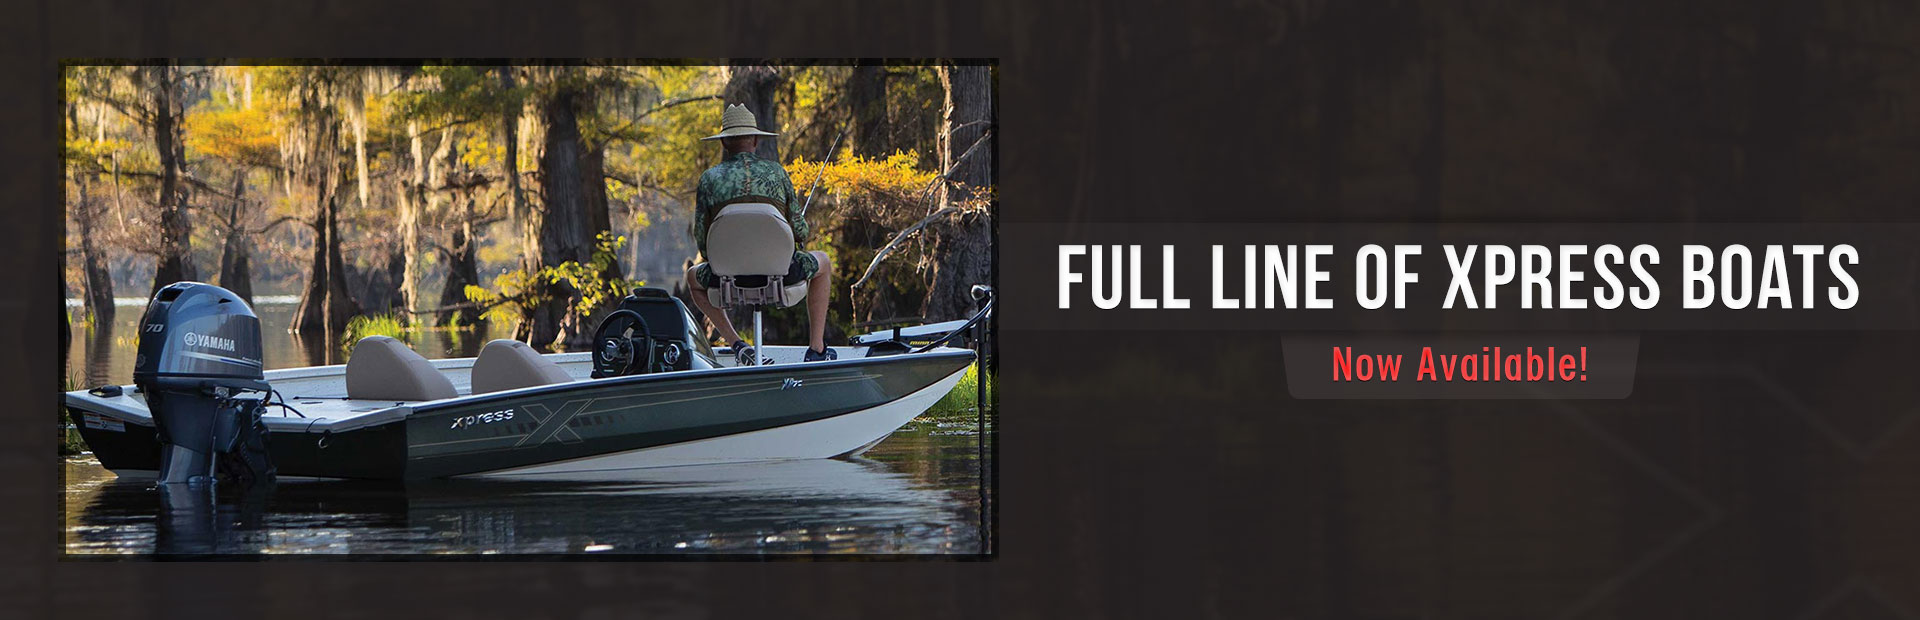 The full line of Xpress Boats is now available at Woods Surfside Marina!